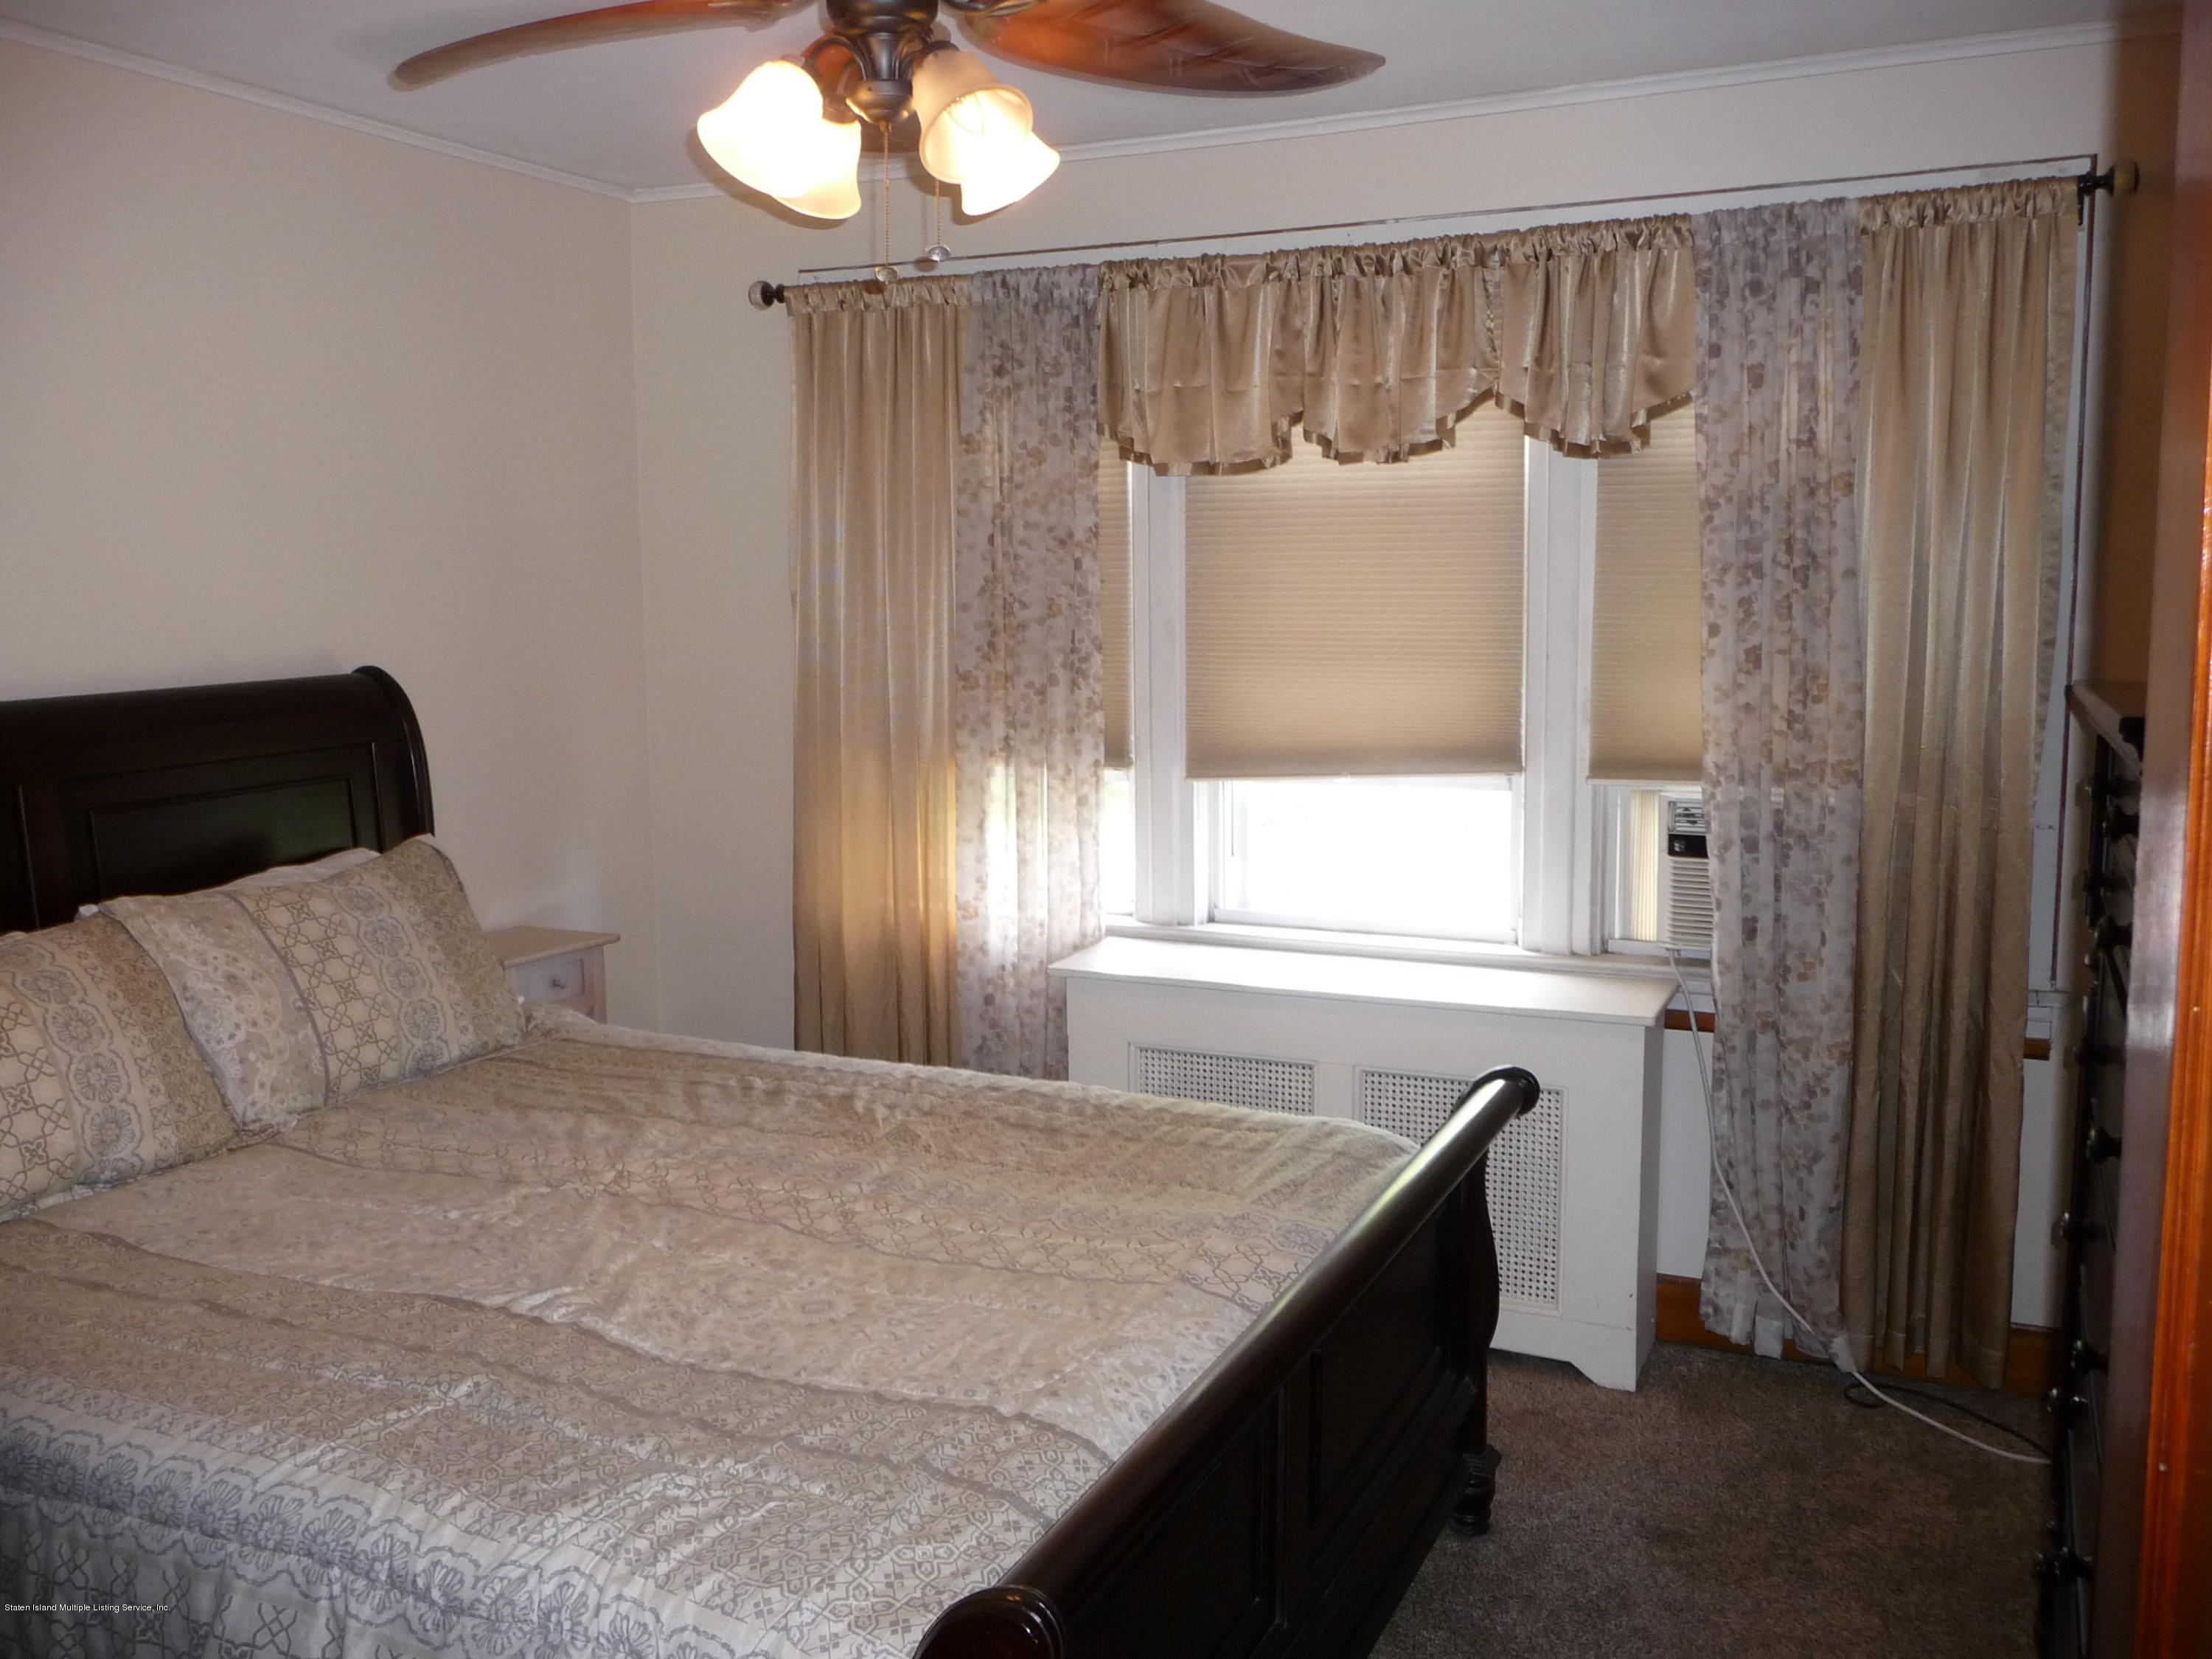 Single Family - Detached 77 Todt Hill Road  Staten Island, NY 10314, MLS-1129718-32